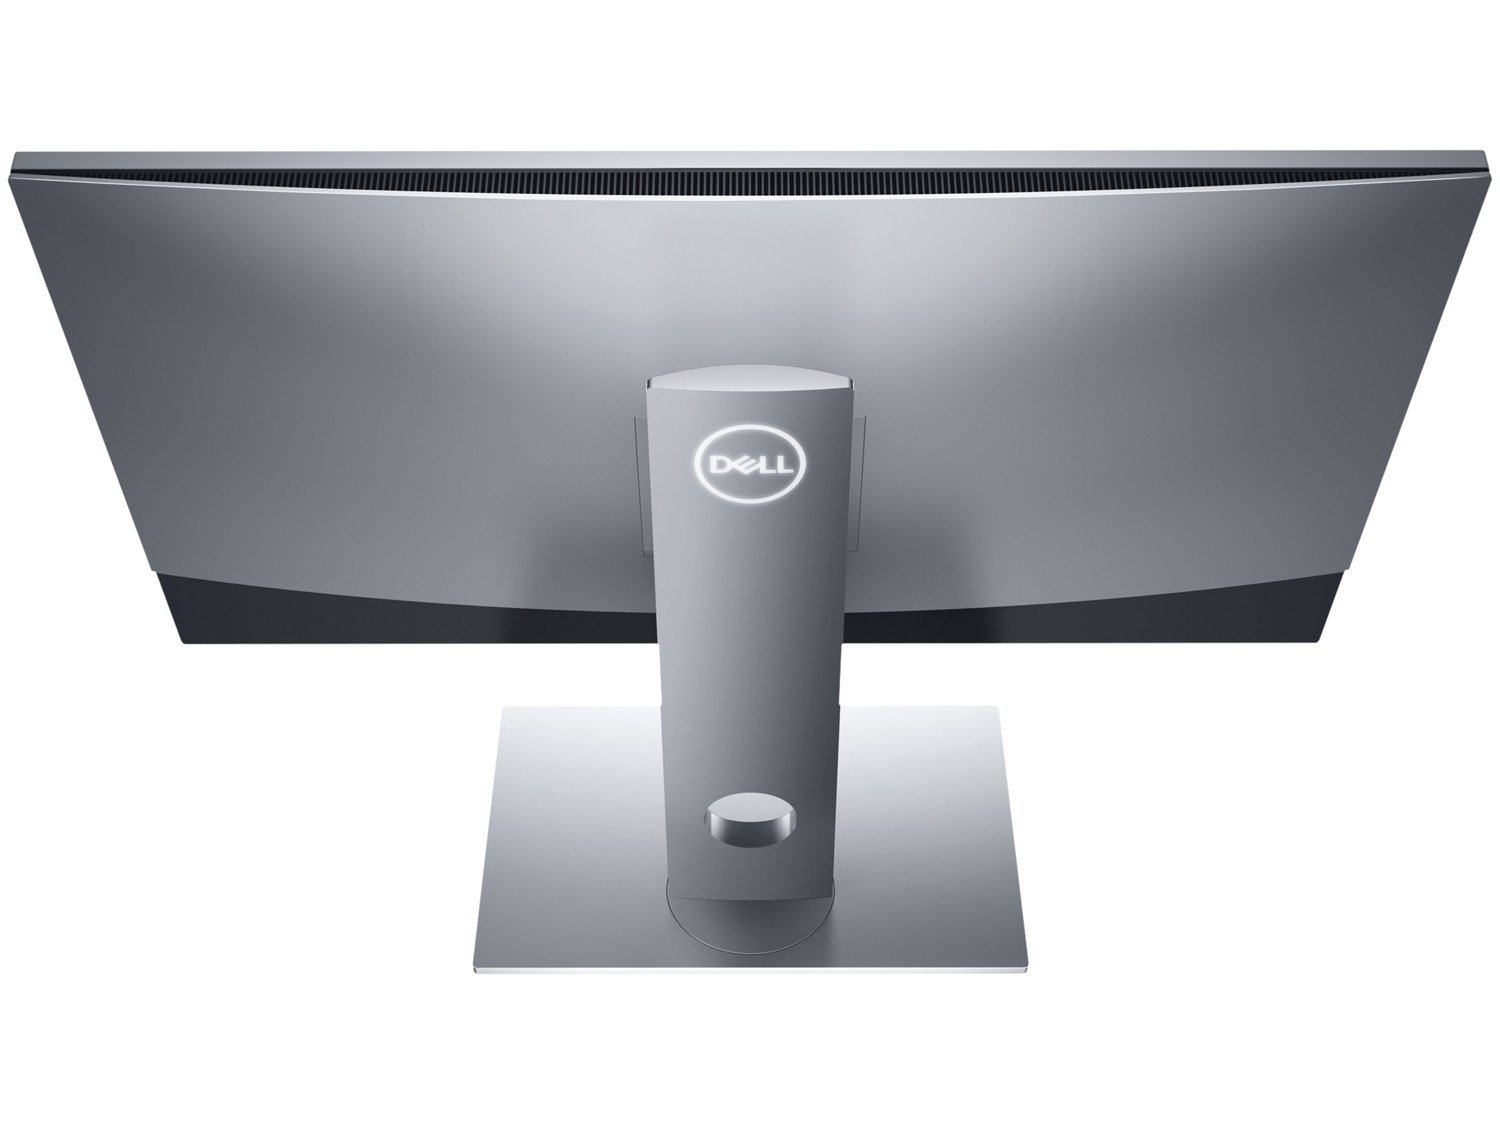 Foto 9 - Monitor Dell LED 31,5 Ultra HD 8K - UP3218K